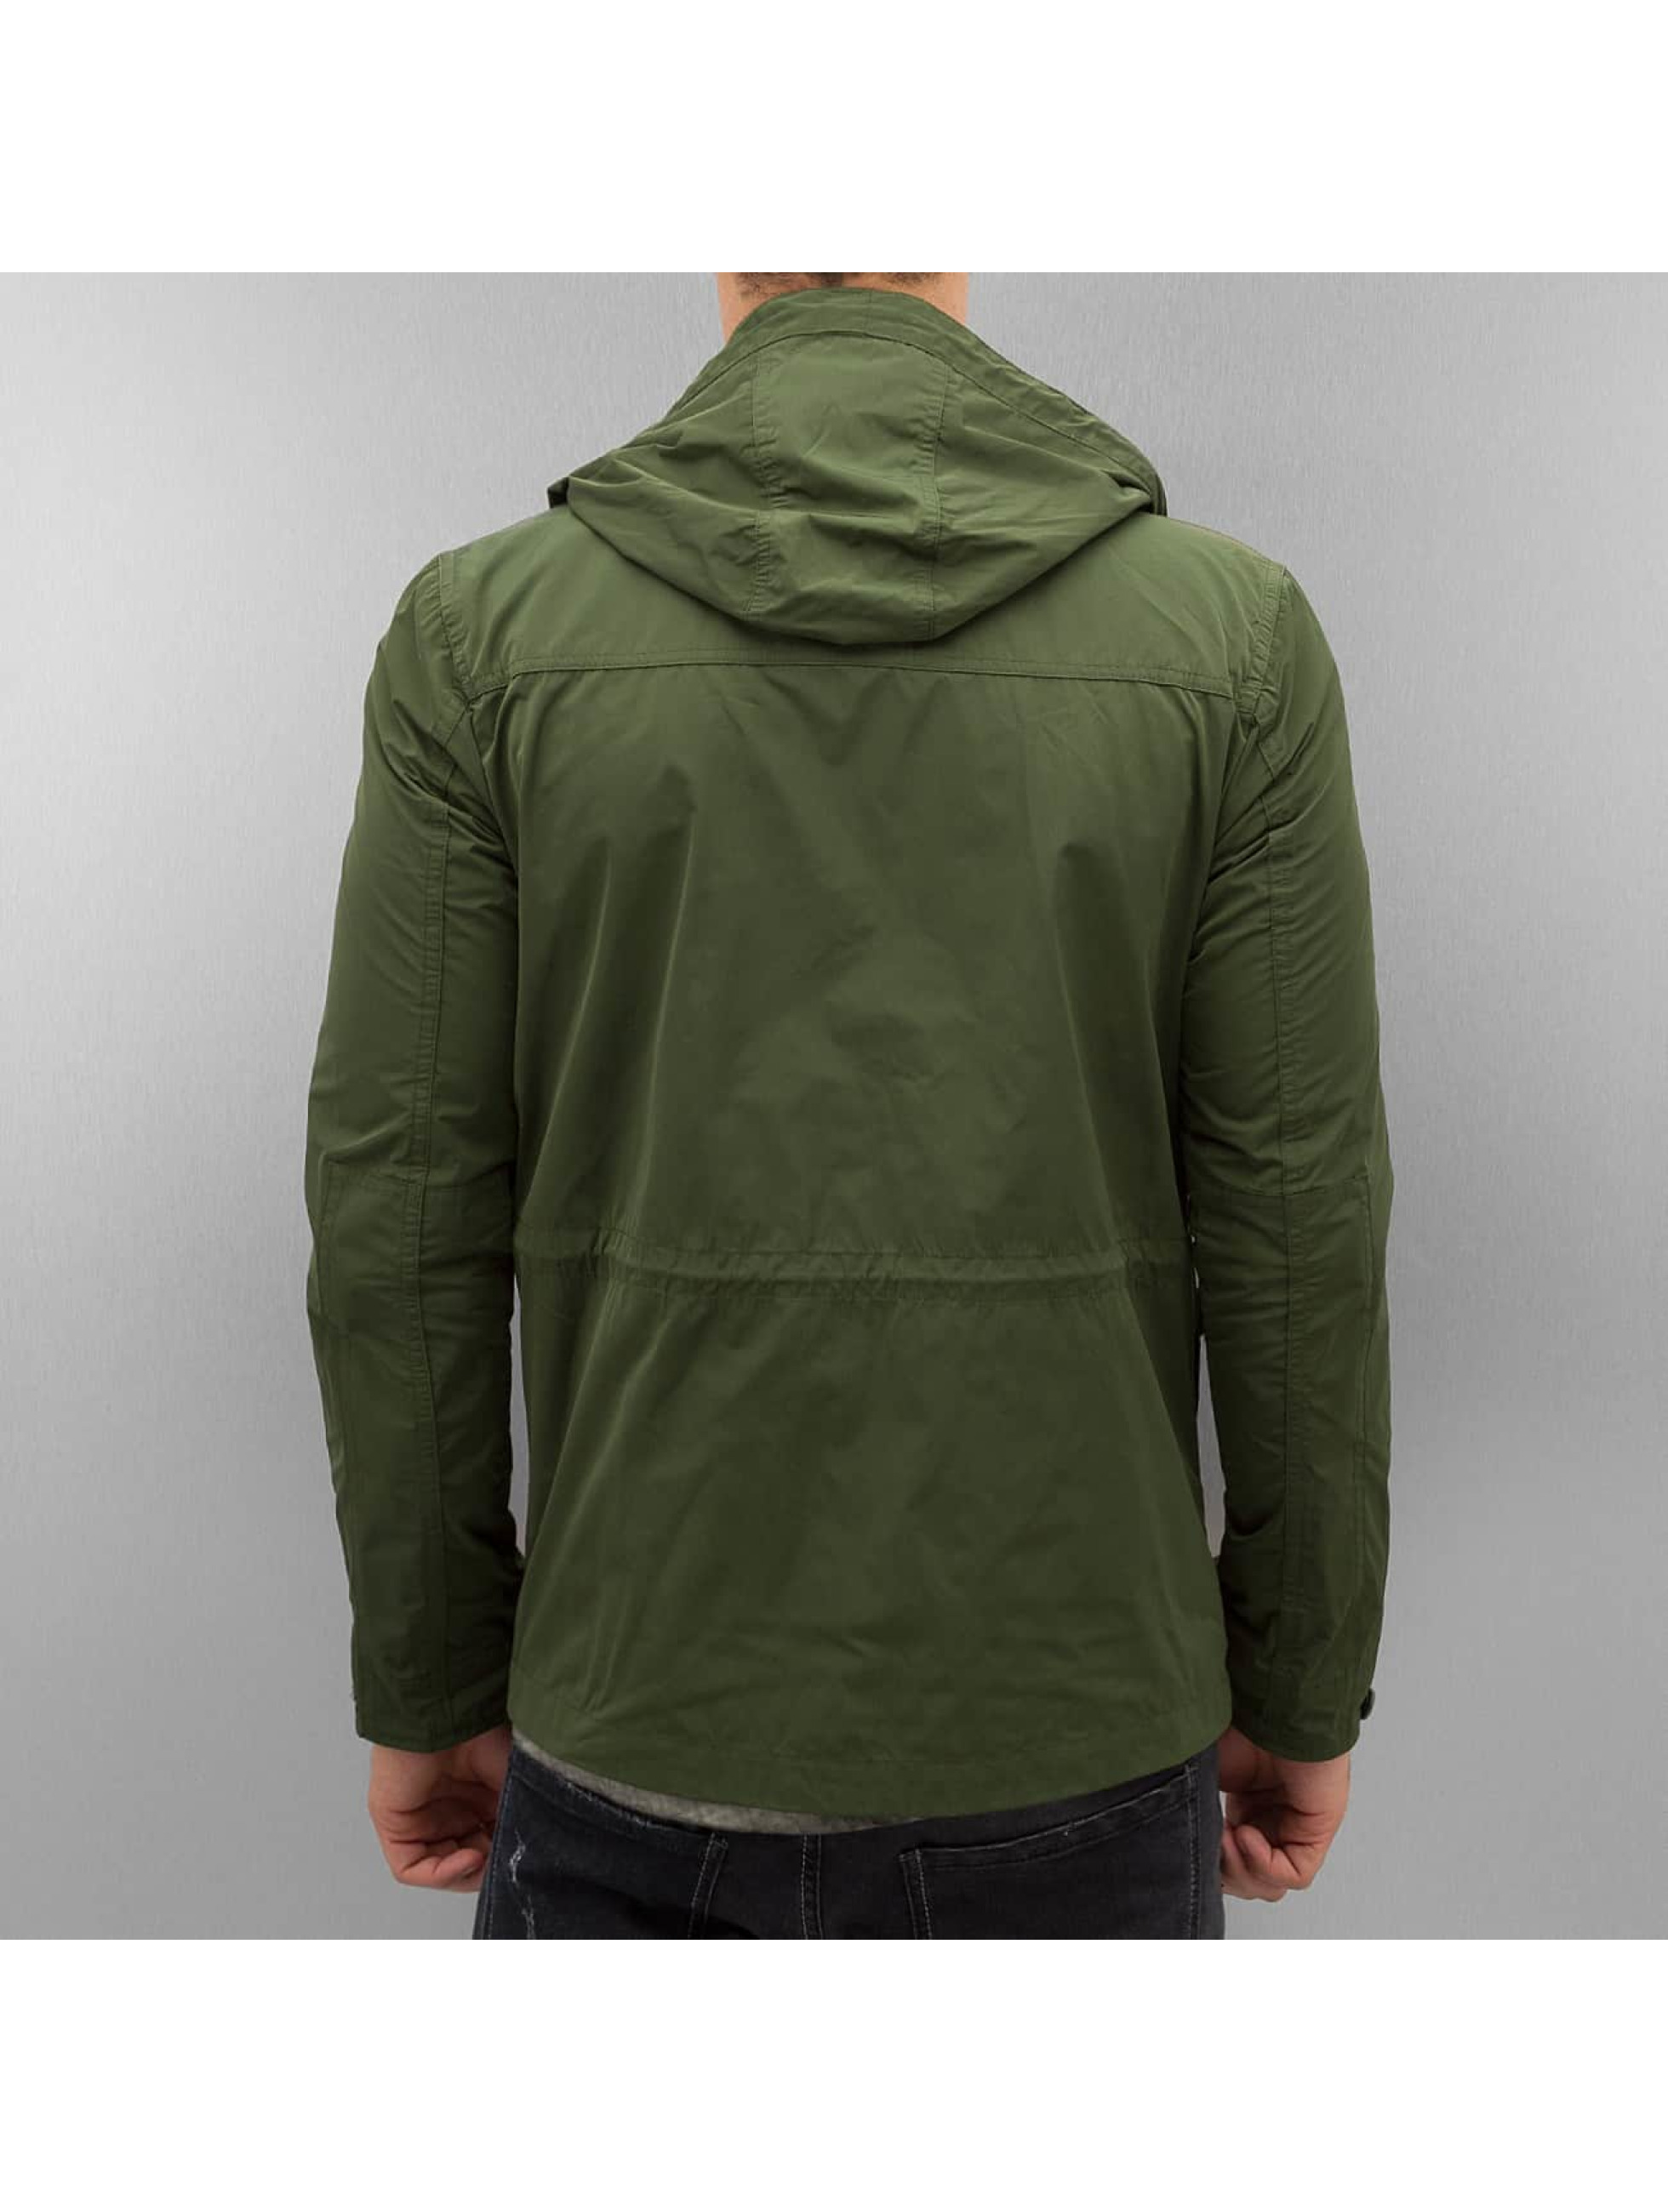 Amsterdenim Lightweight Jacket Sander green